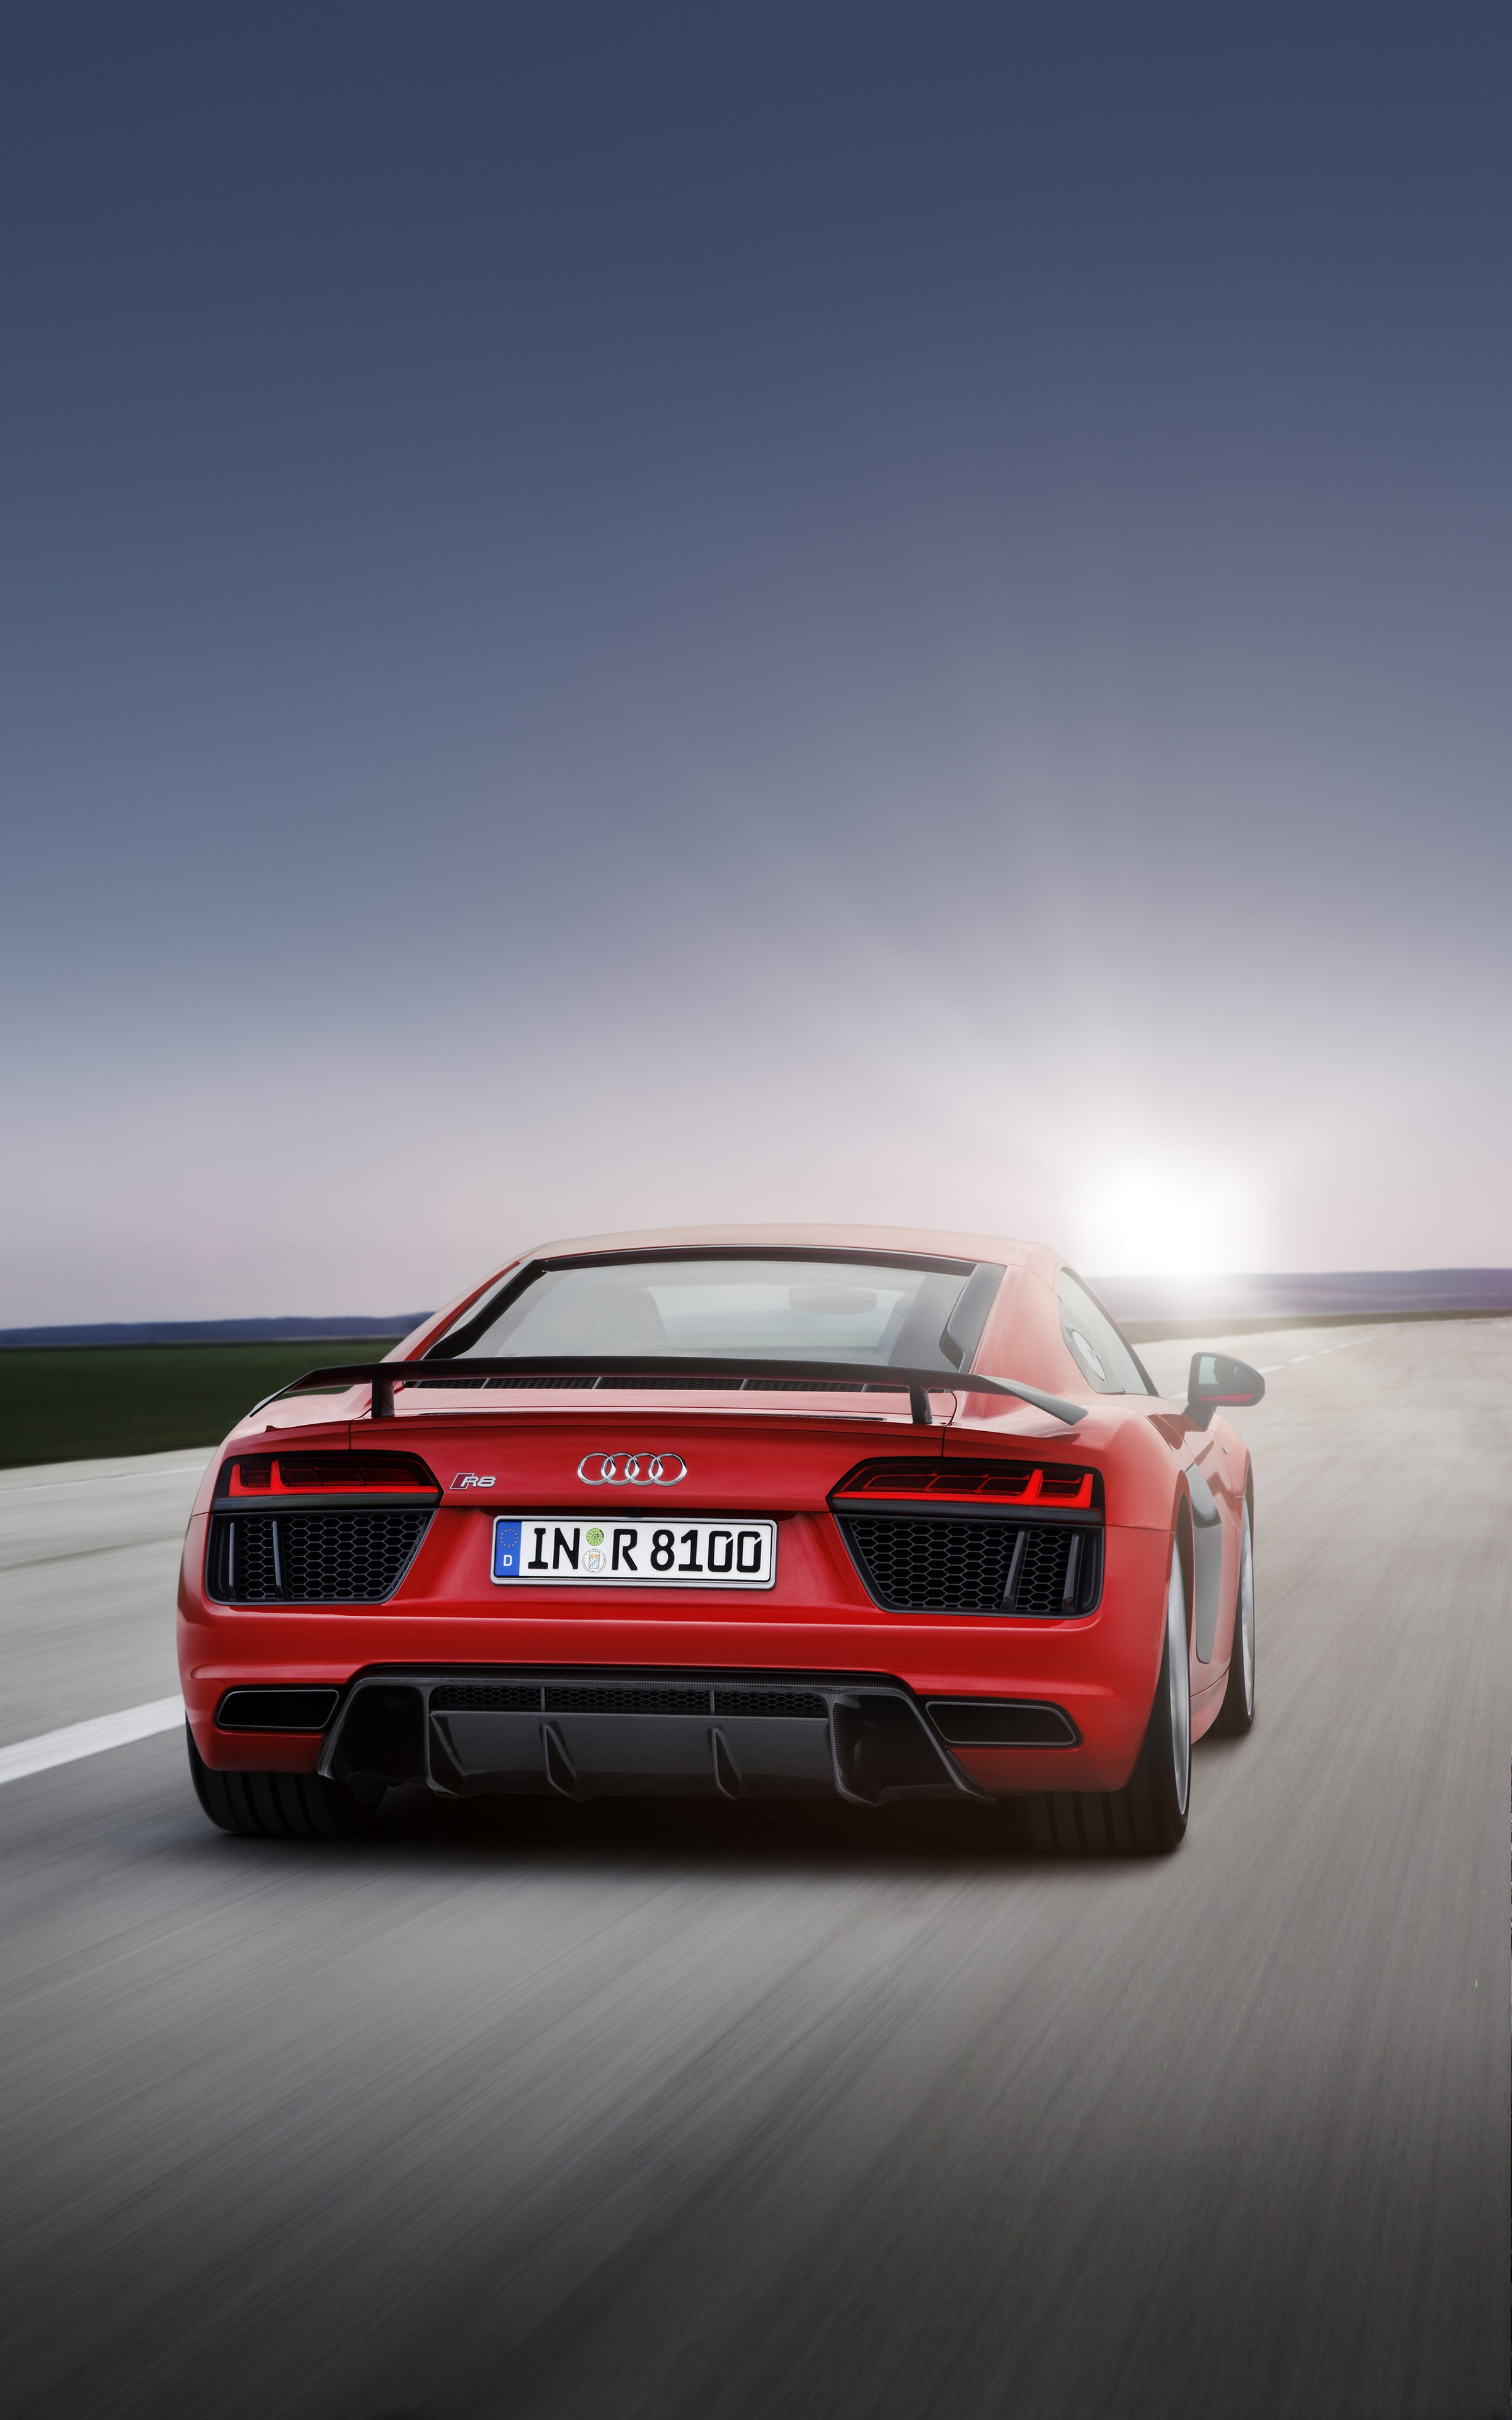 Super Car 5760x1080 Wallpaper Audi R8 Car Vehicle Super Car Portrait Display Red